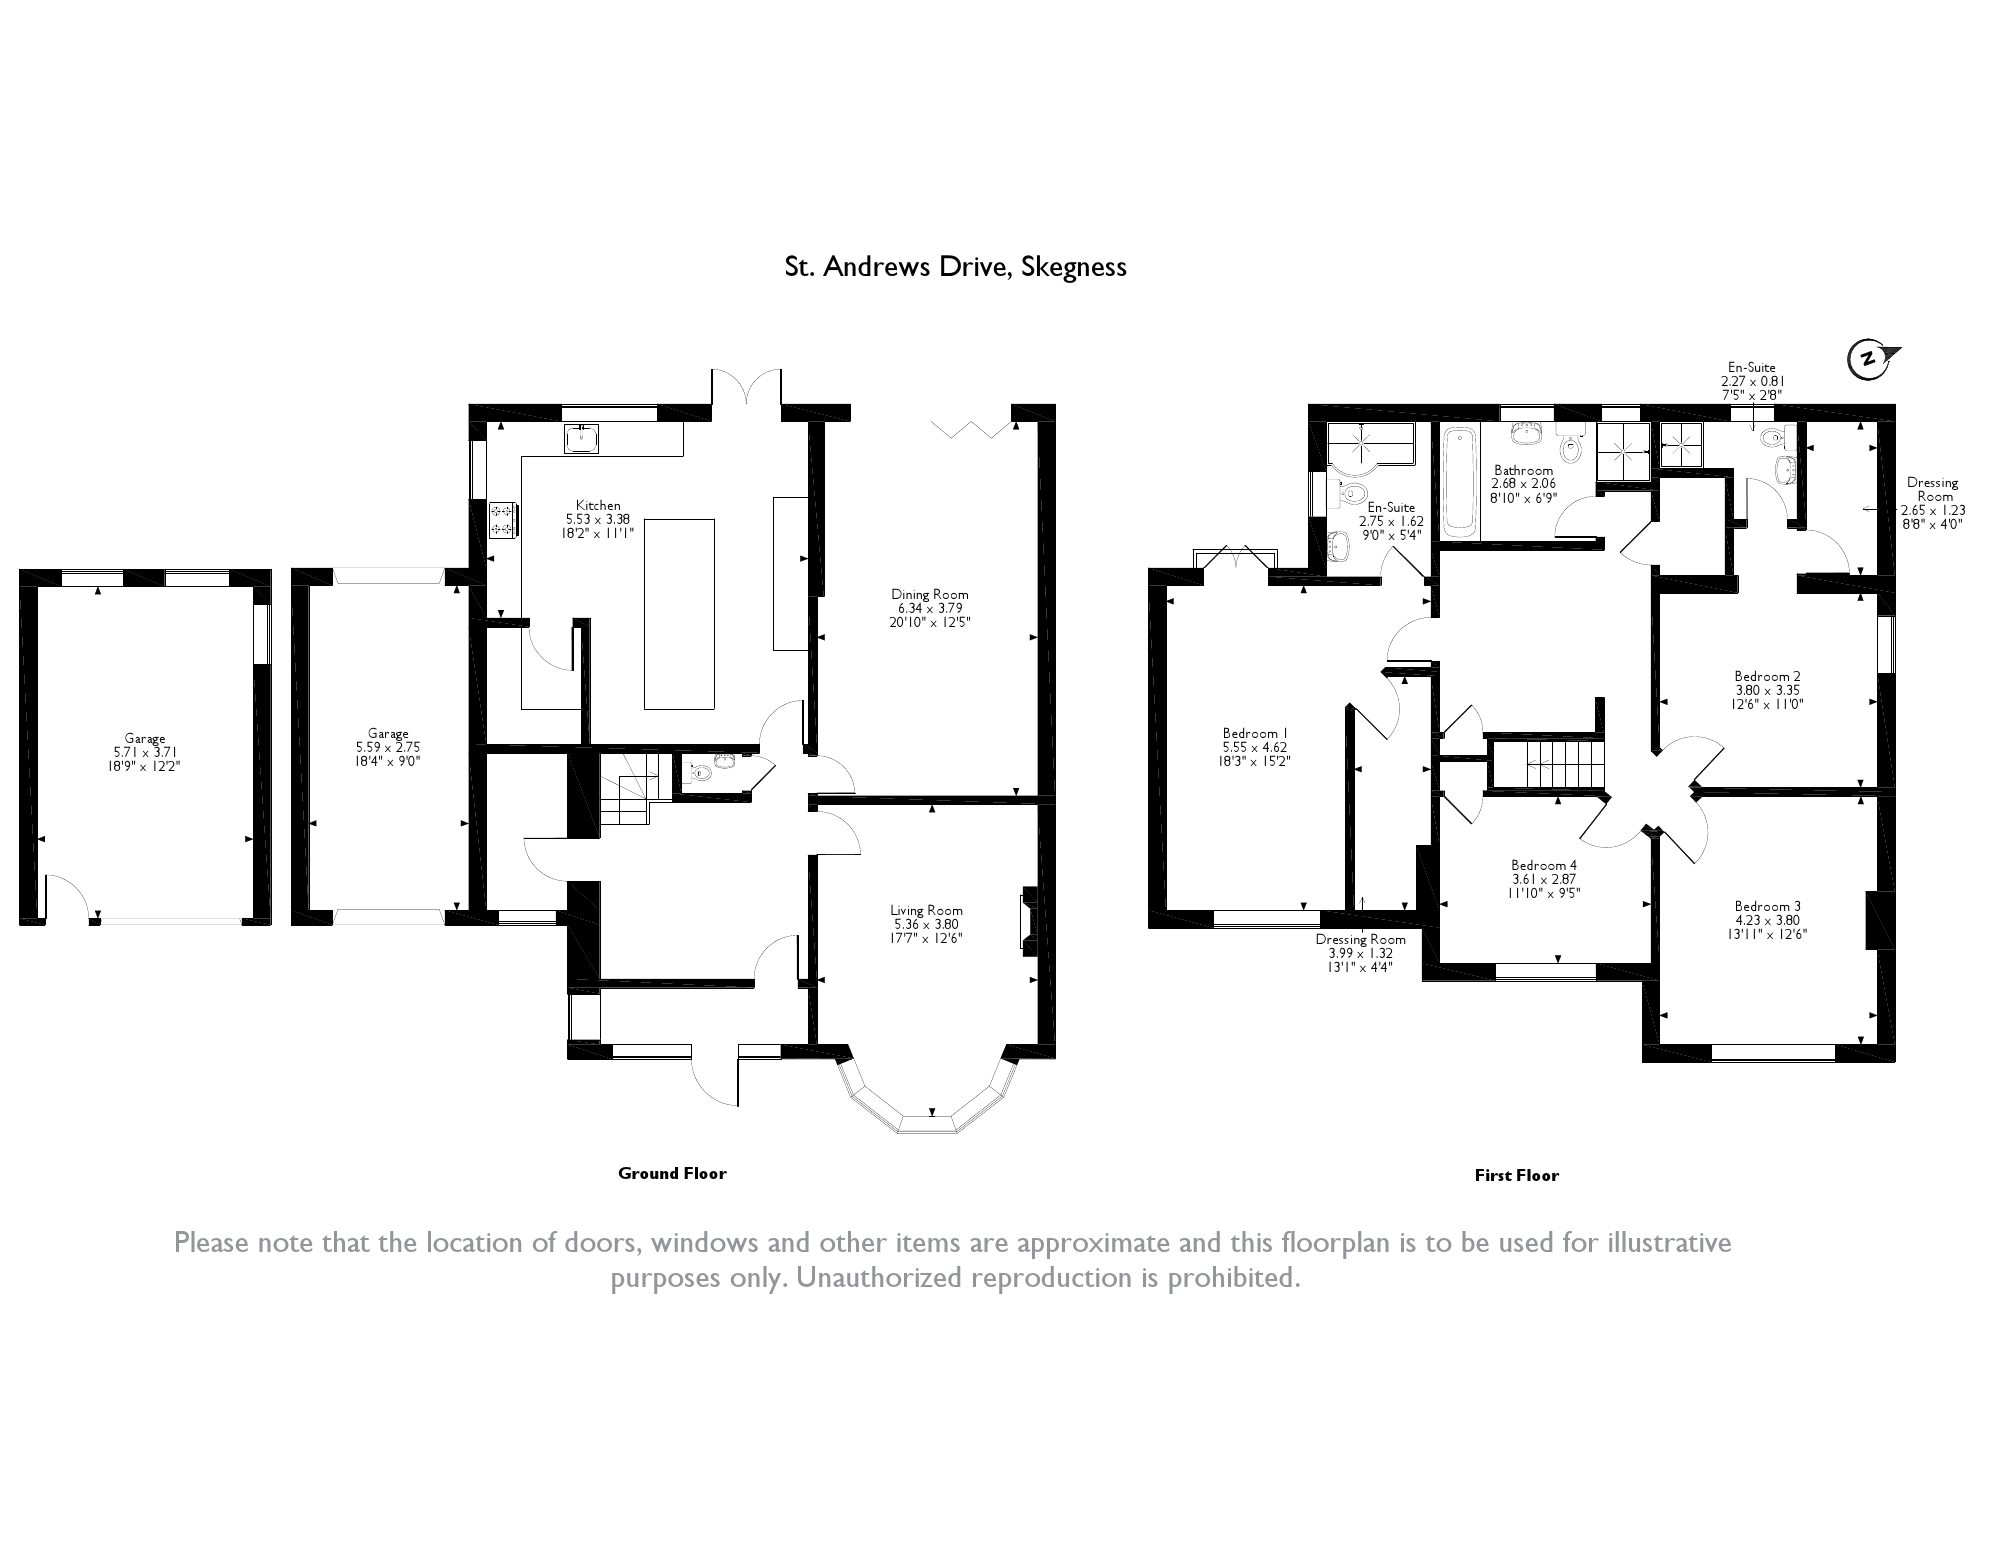 St. Andrews Drive, Skegness, floor plan